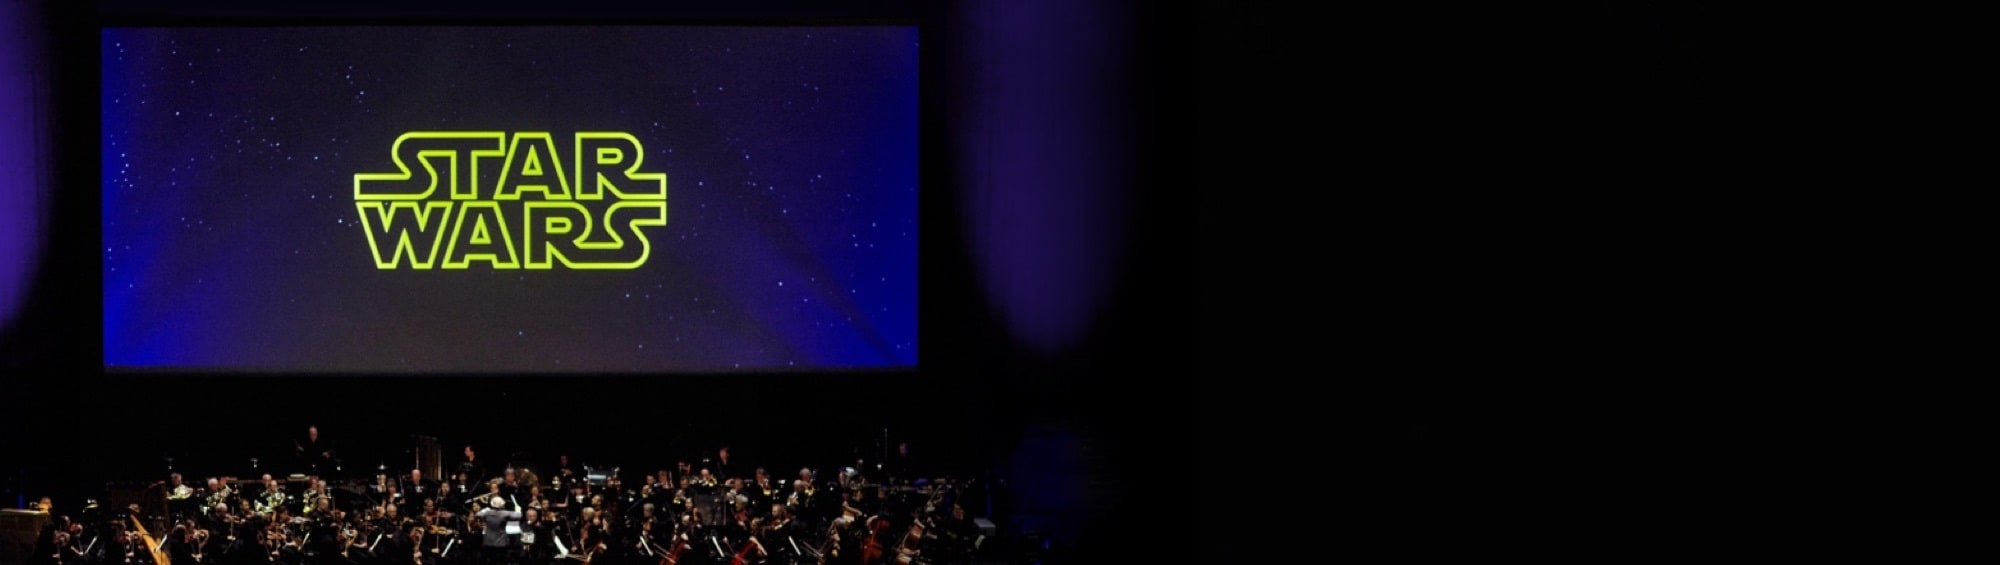 See Star Wars in Concert on tour | Find Out More